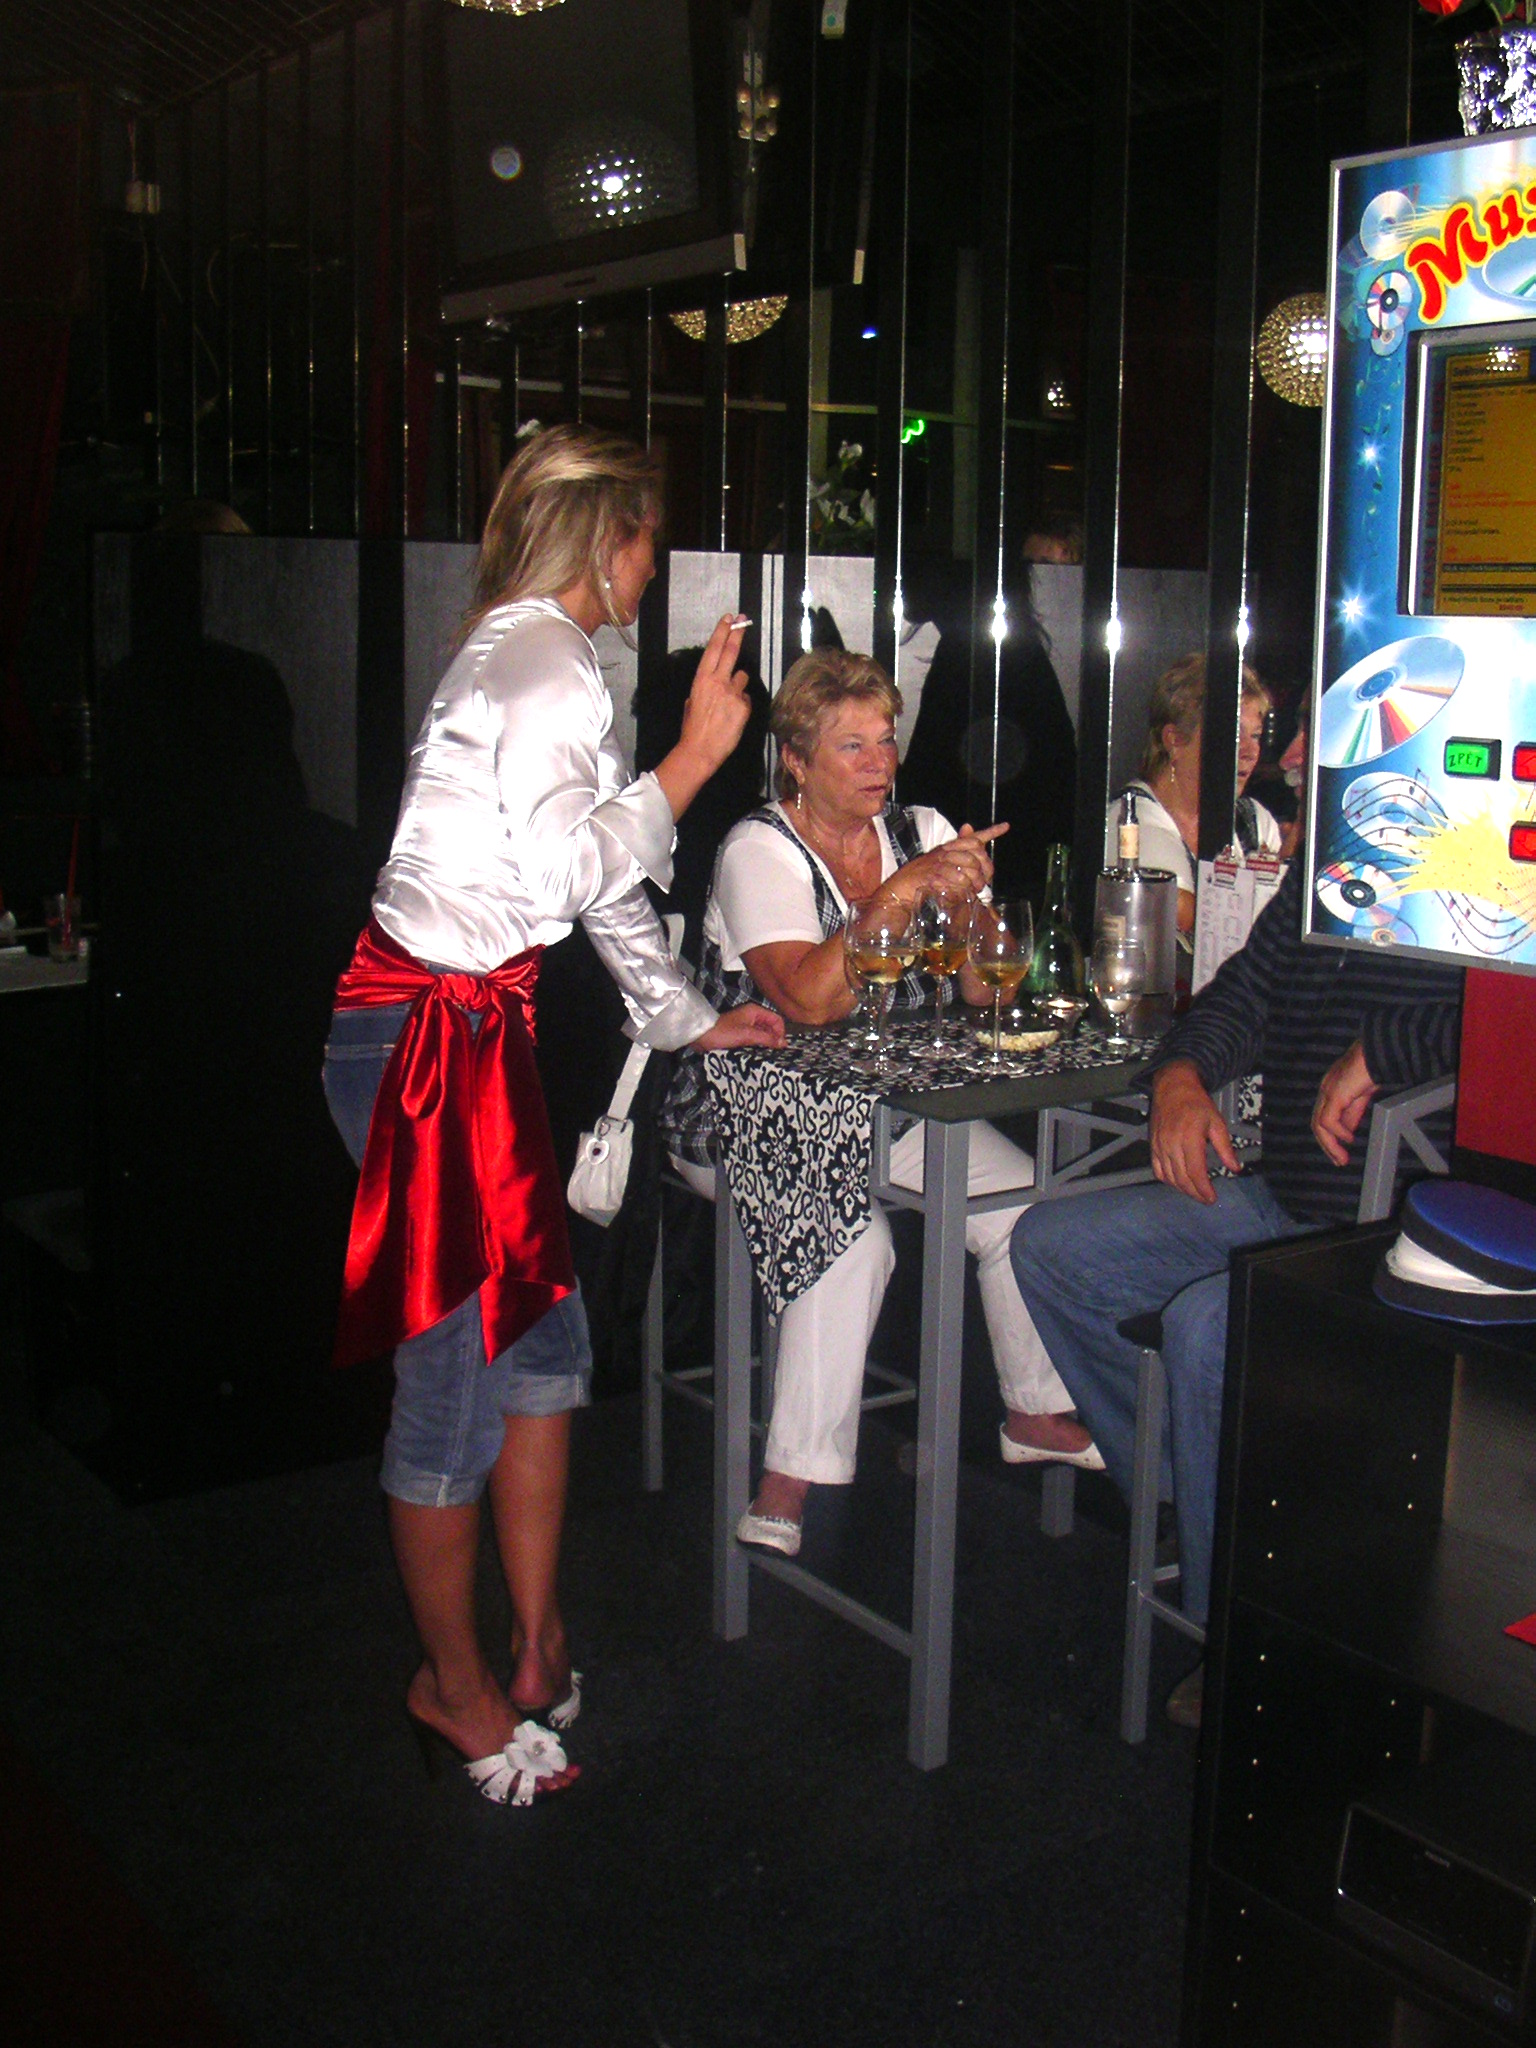 party_v_barvach_12_20111111_1833130288